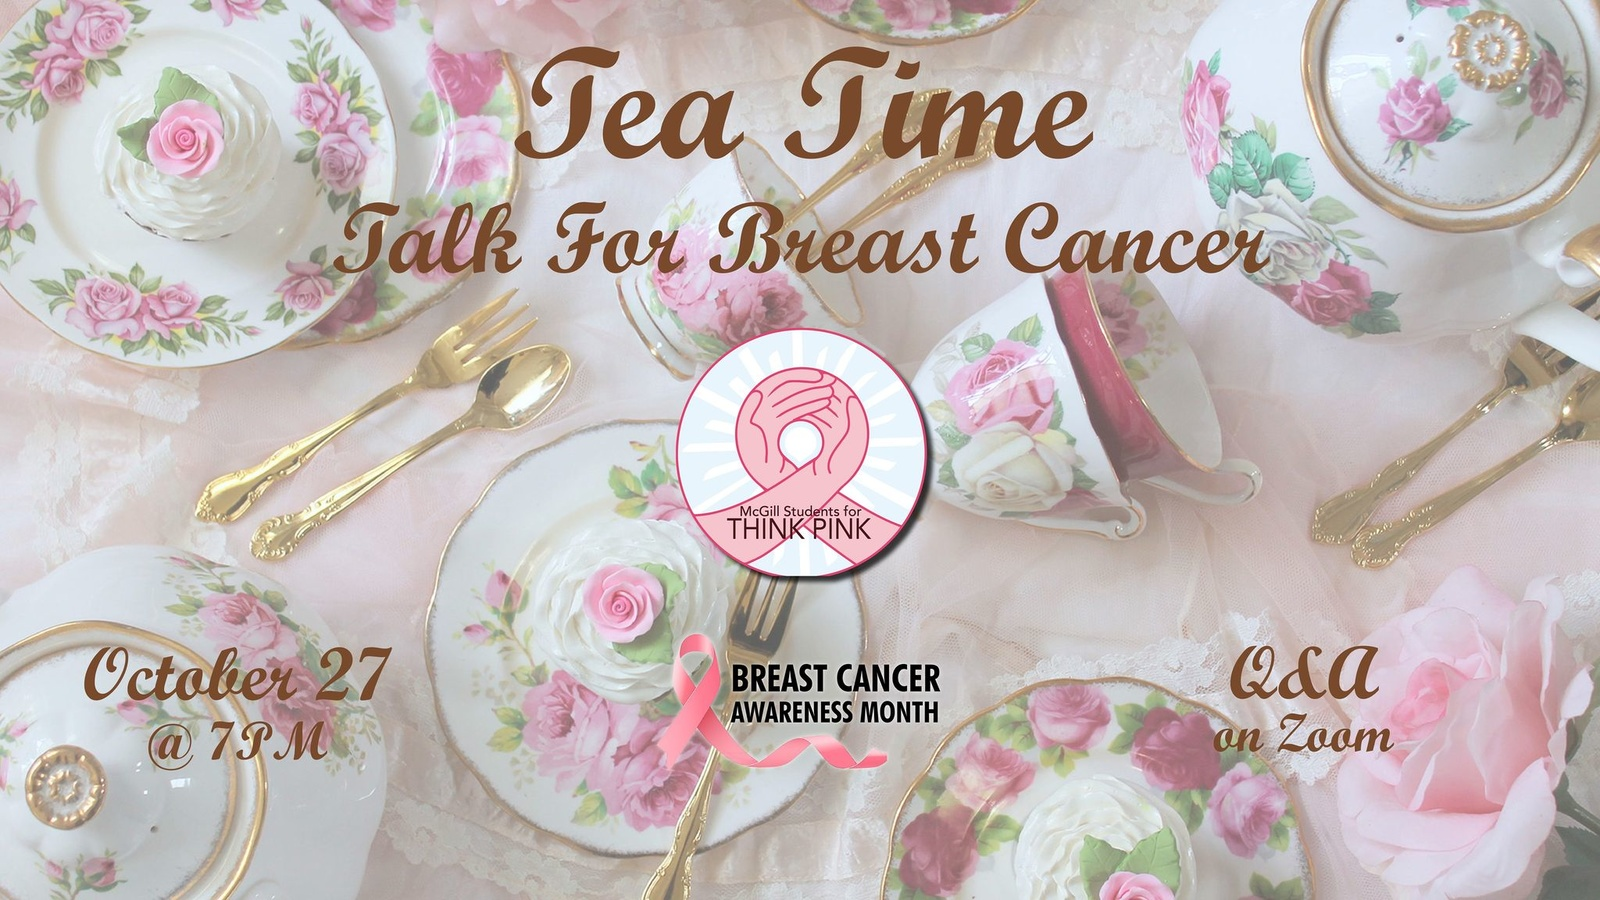 Tea Time Talk for Breast Cancer